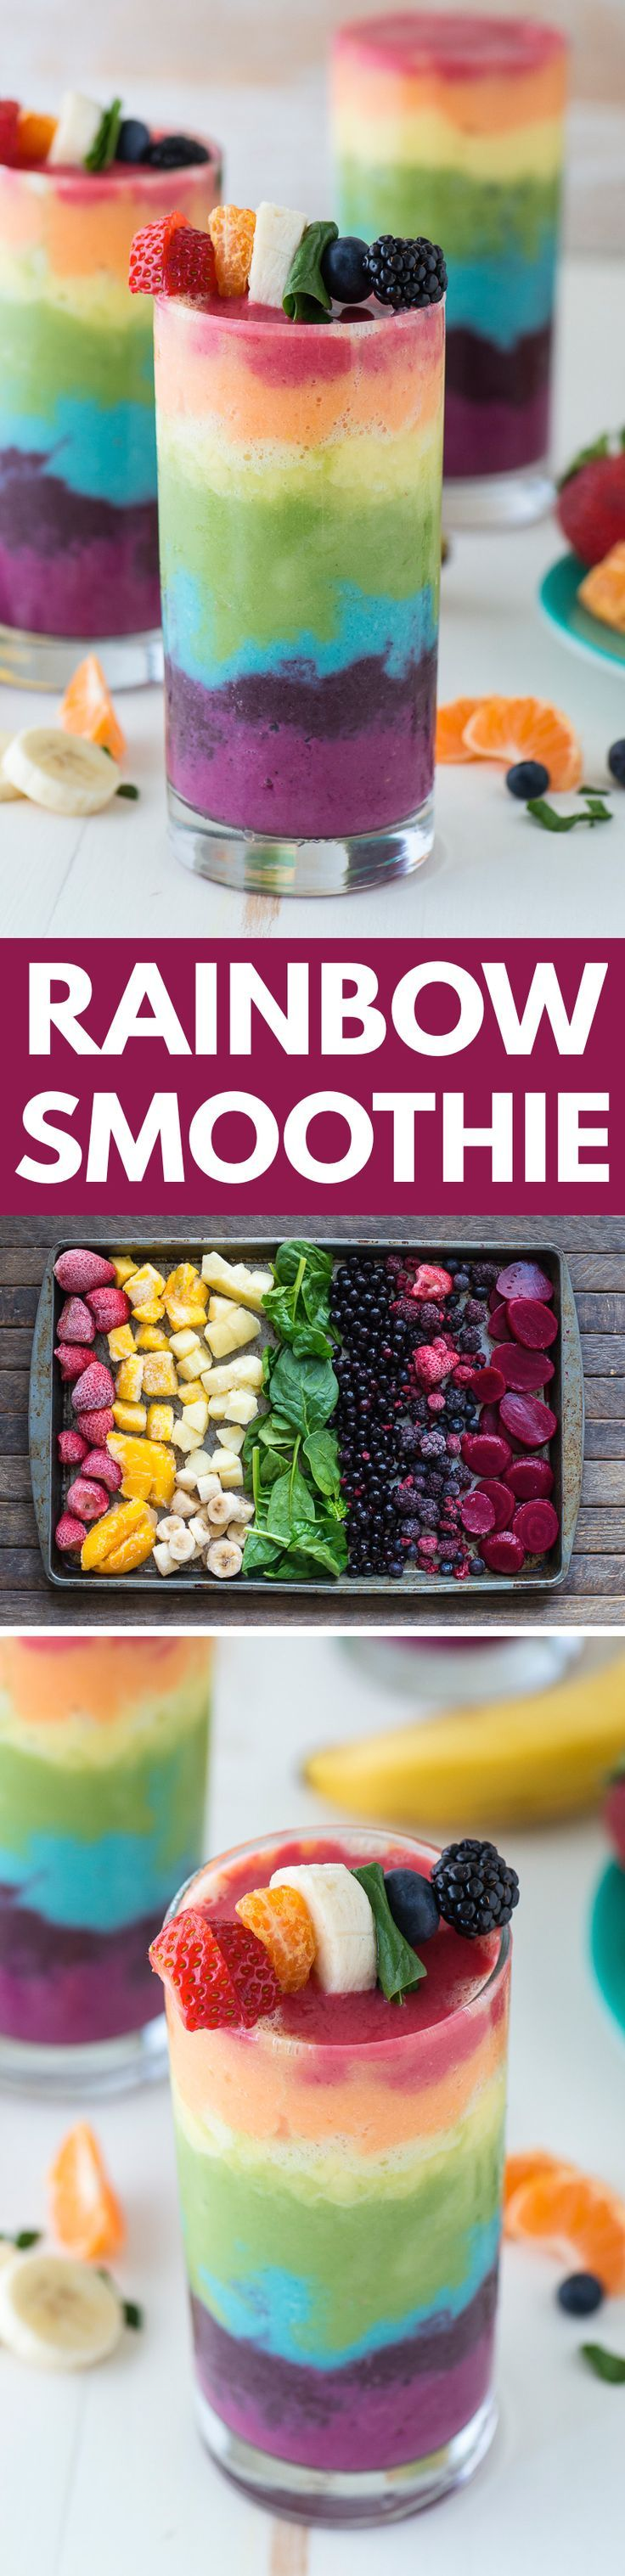 Beautiful 7 layer rainbow smoothie recipe! Full of tons of fruit and topped with a fruit skewer, it's the ultimate rainbow smoothie!: